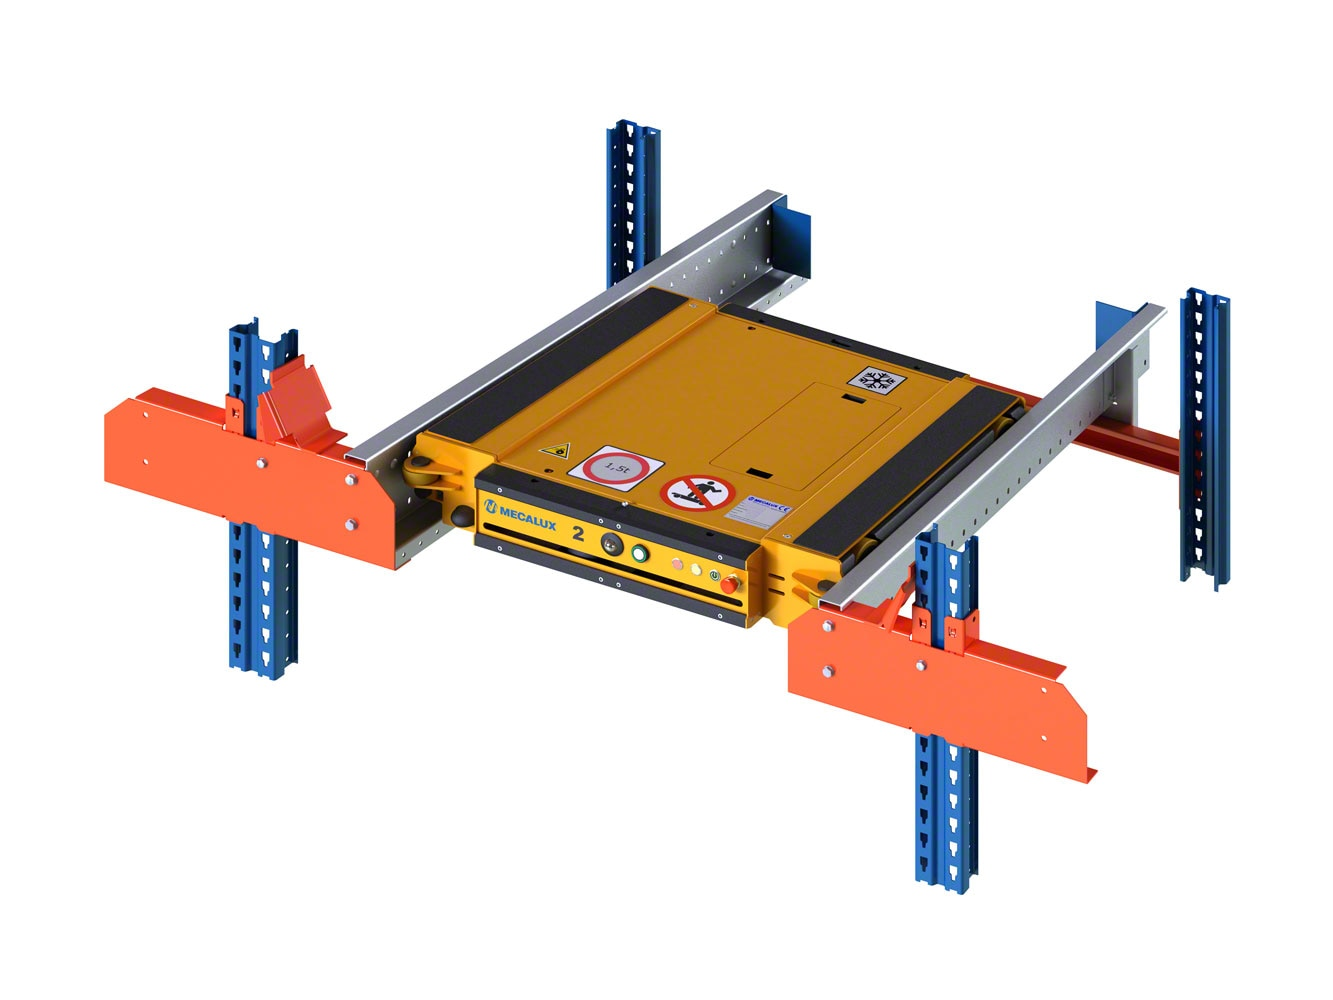 Specific structural components for the Pallet Shuttle system